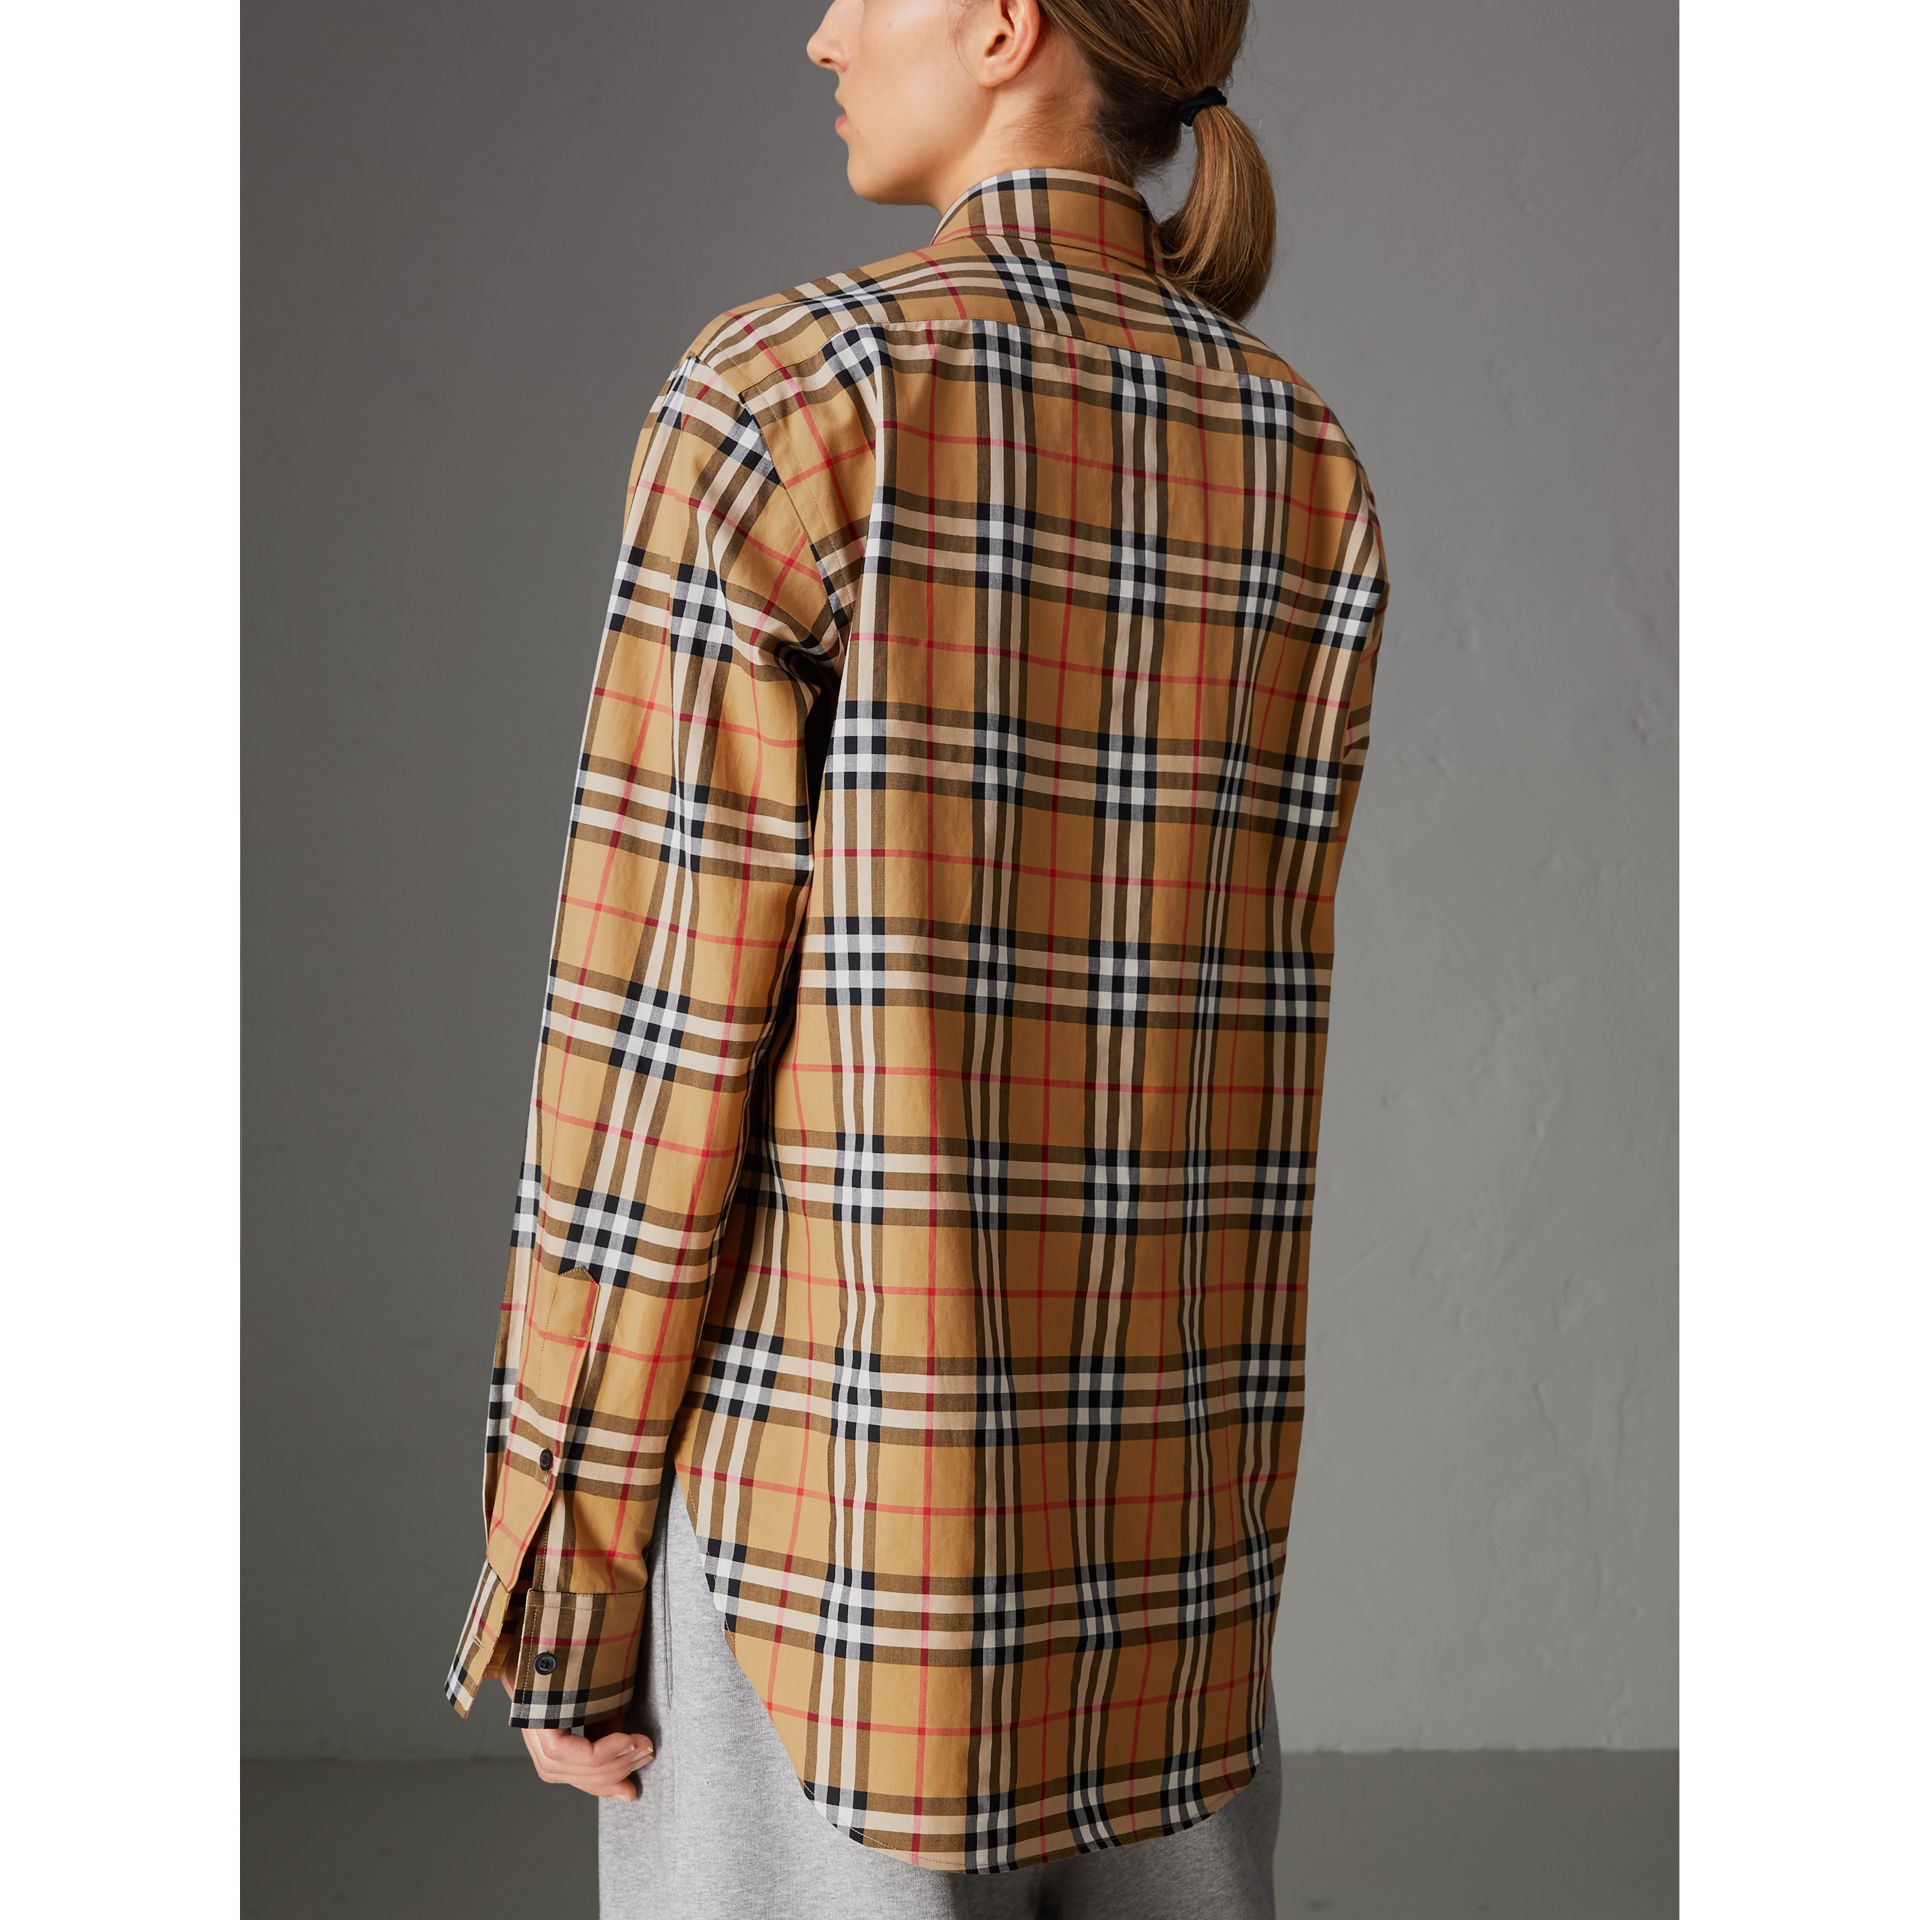 Rainbow Vintage Check Cotton Shirt in Antique Yellow - Women | Burberry Canada - gallery image 2